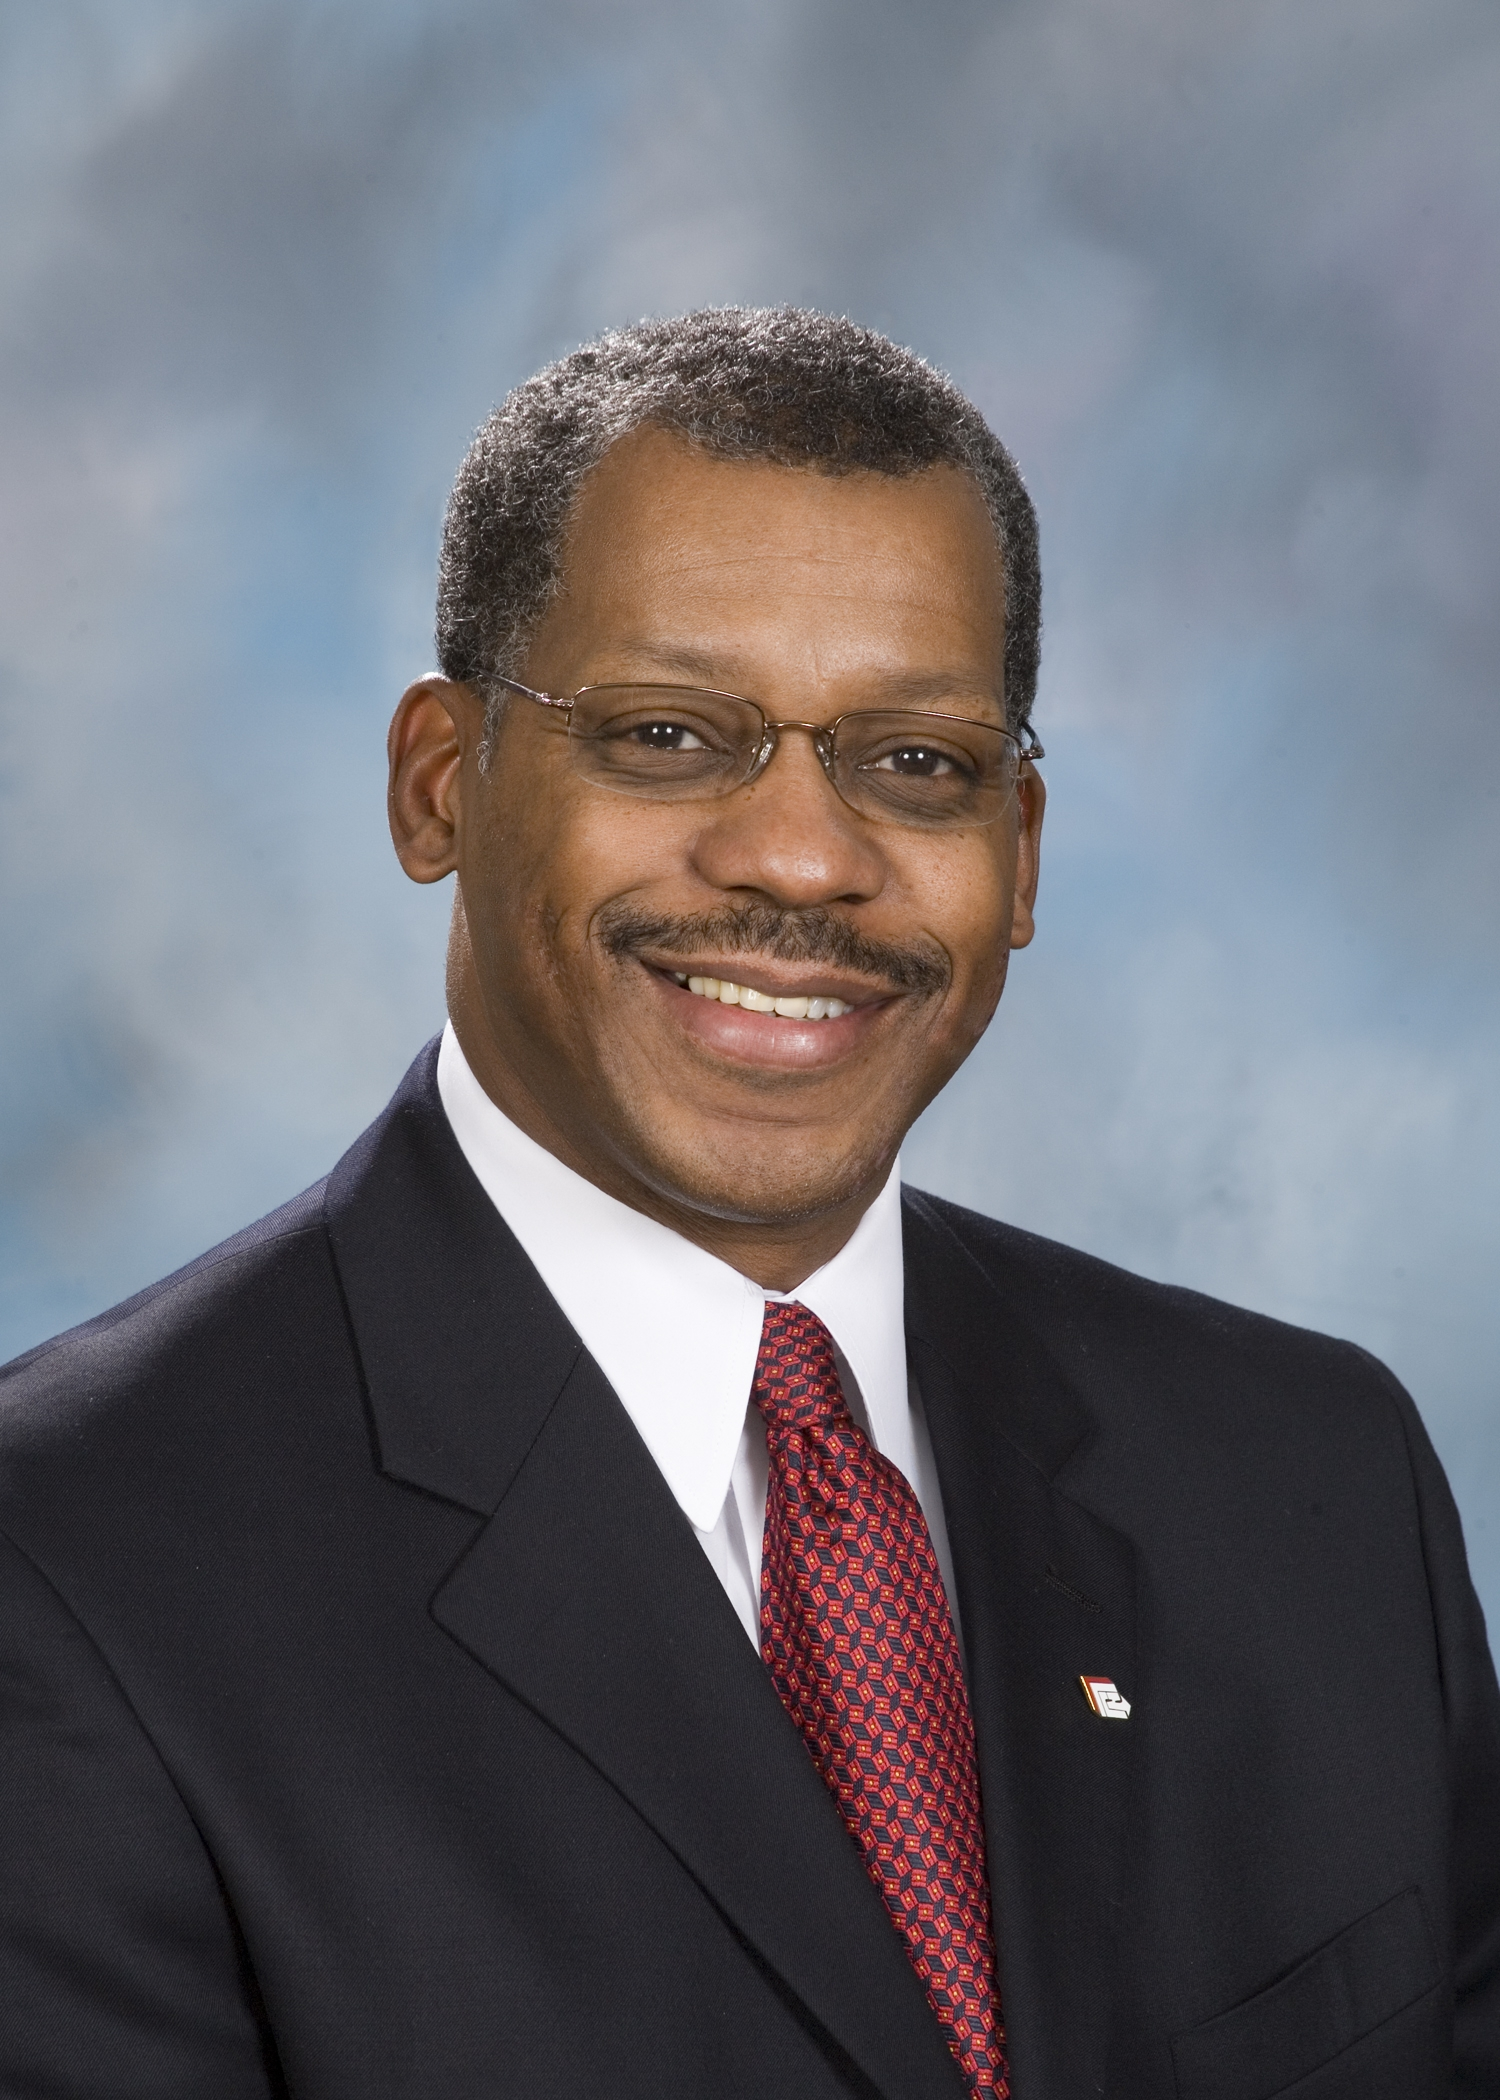 Julius C. Green, CPA, was reelected 2012-2013 treasurer of the PICPA.